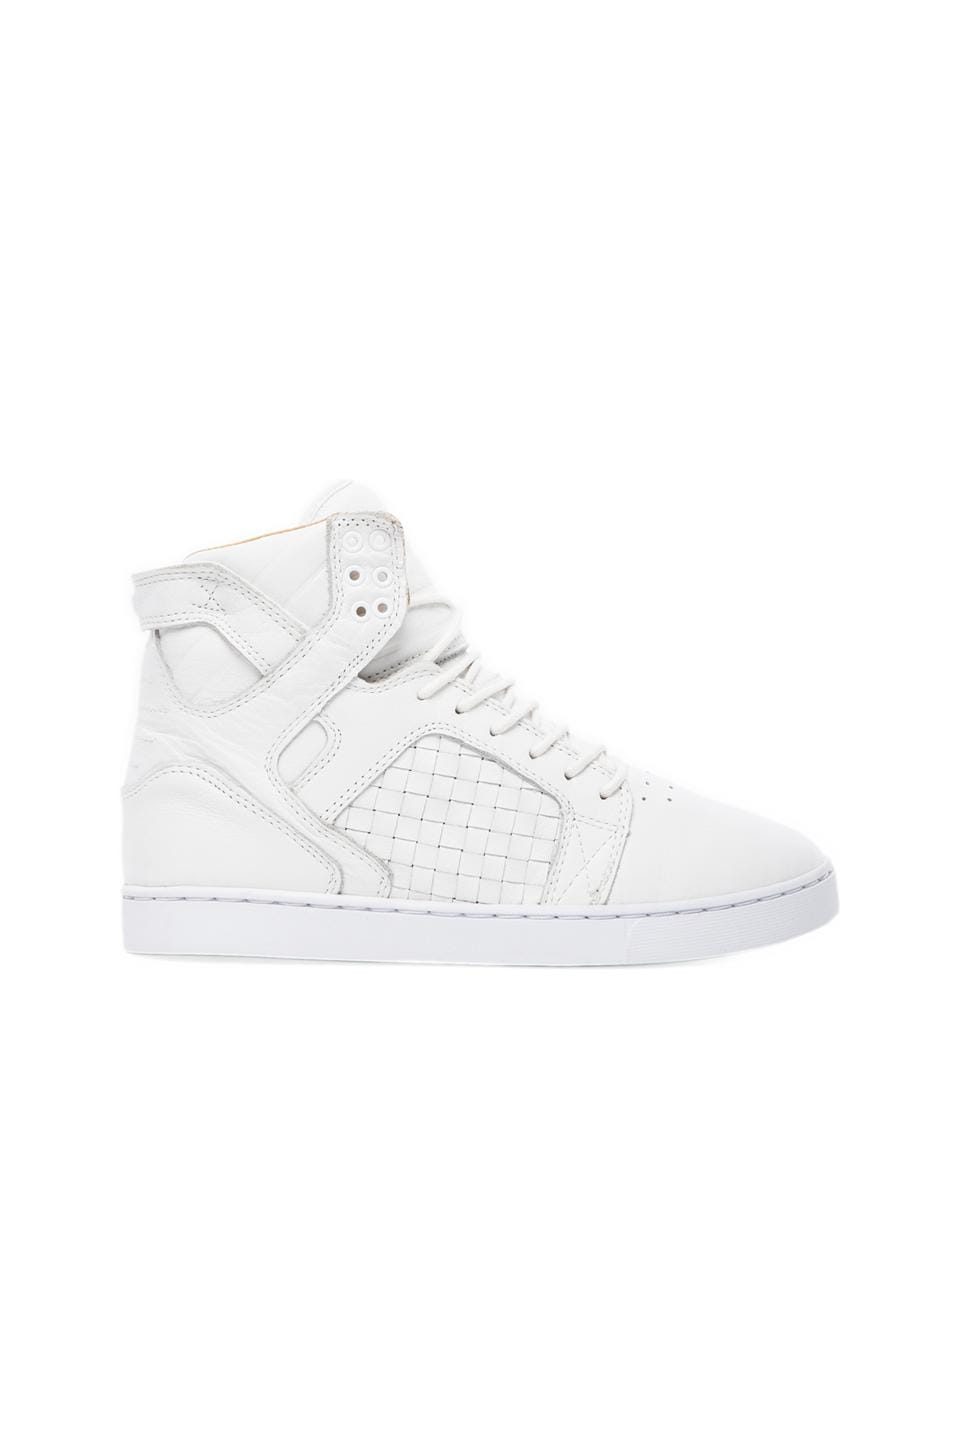 Supra Sktyop LX Woven Leather in White